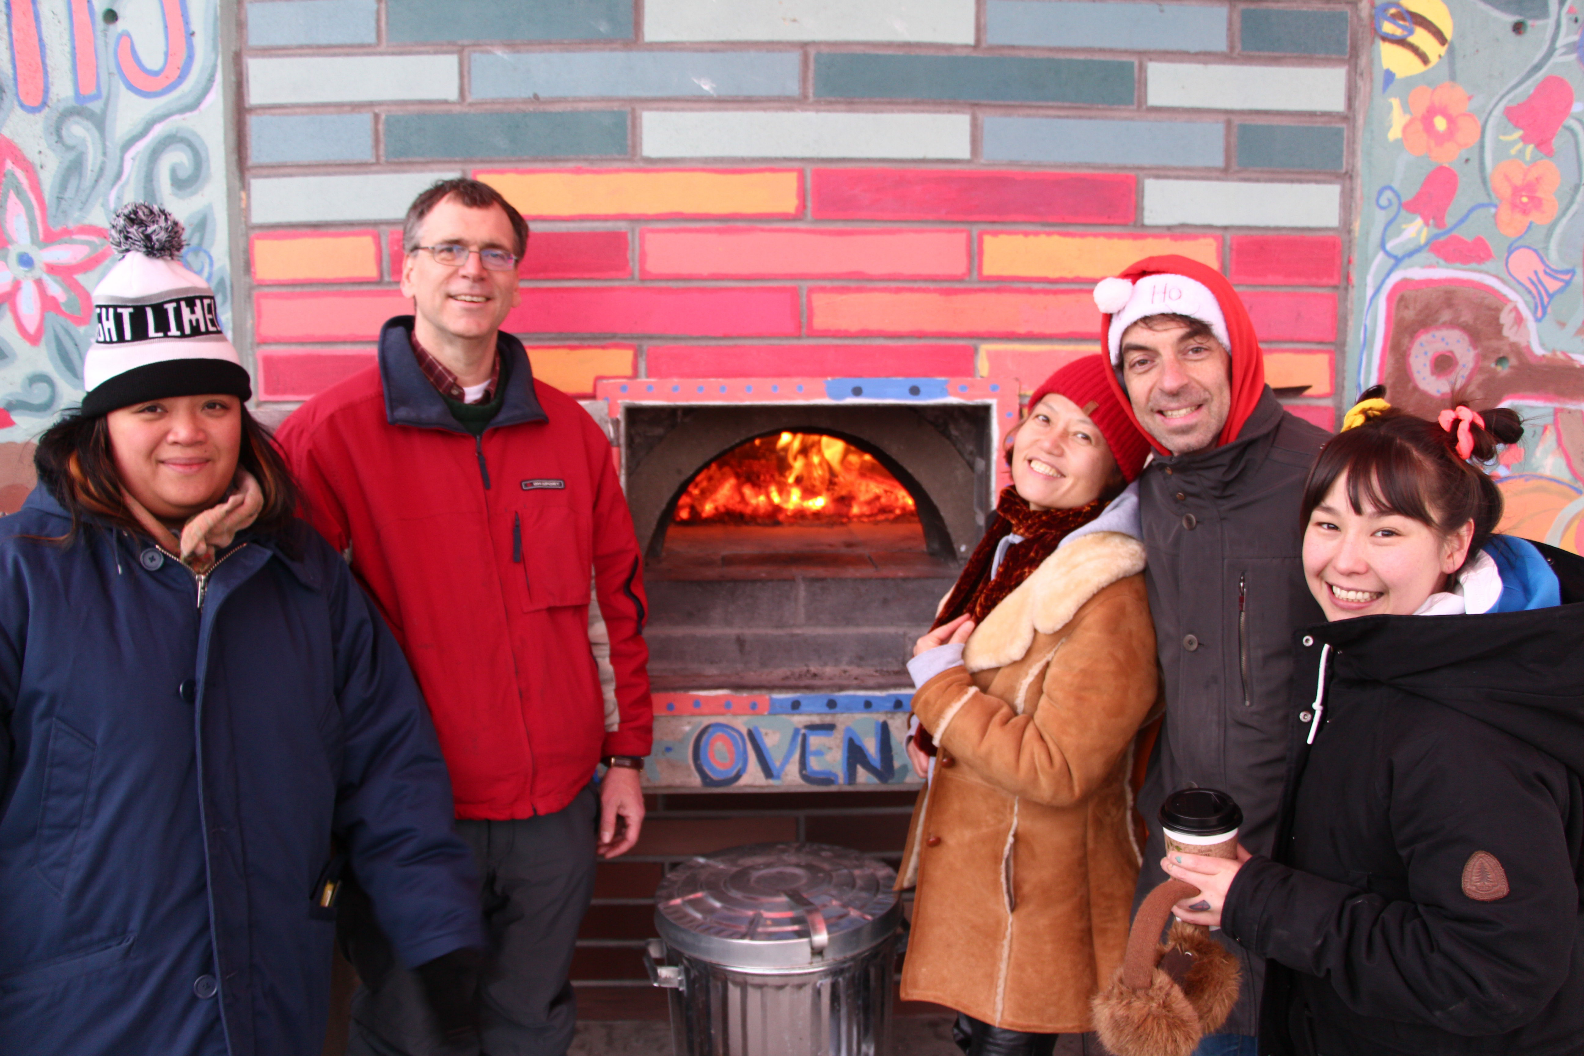 Winter Solstice volunteers pose next to a wood burning oven where they will bake treats.